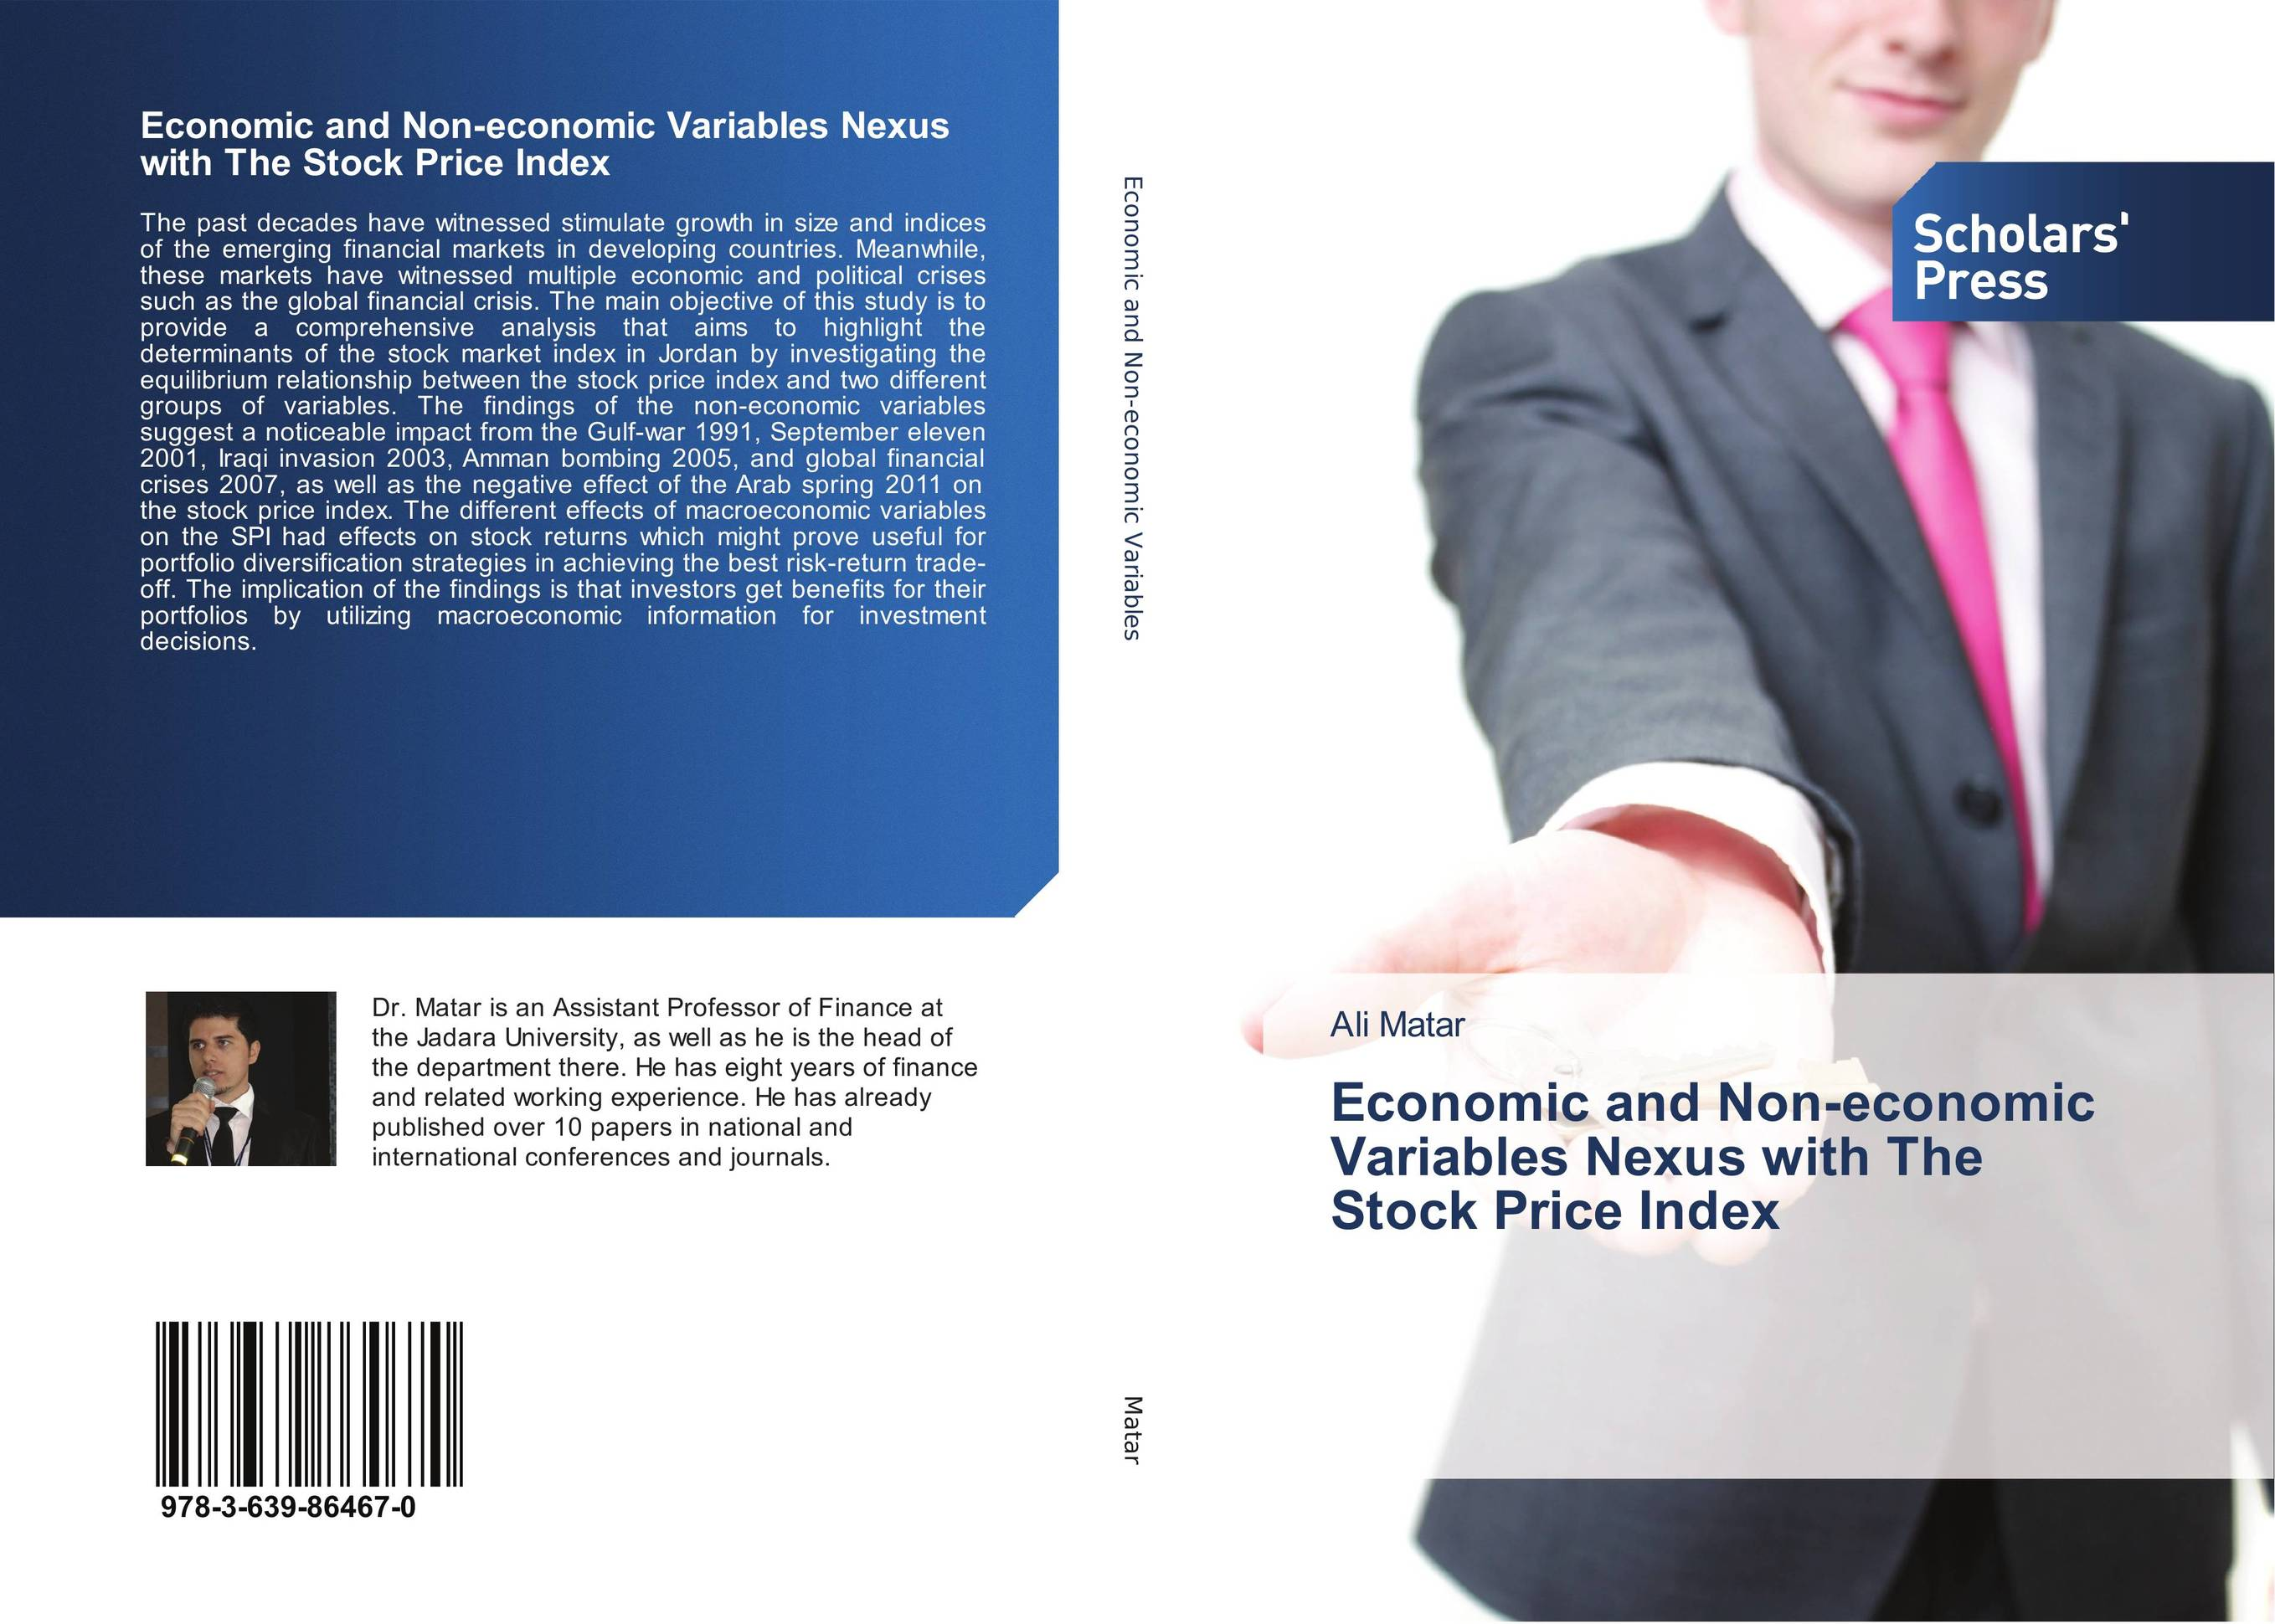 Economic and Non-economic Variables Nexus with The Stock Price Index tobias olweny and kenedy omondi the effect of macro economic factors on stock return volatility at nse